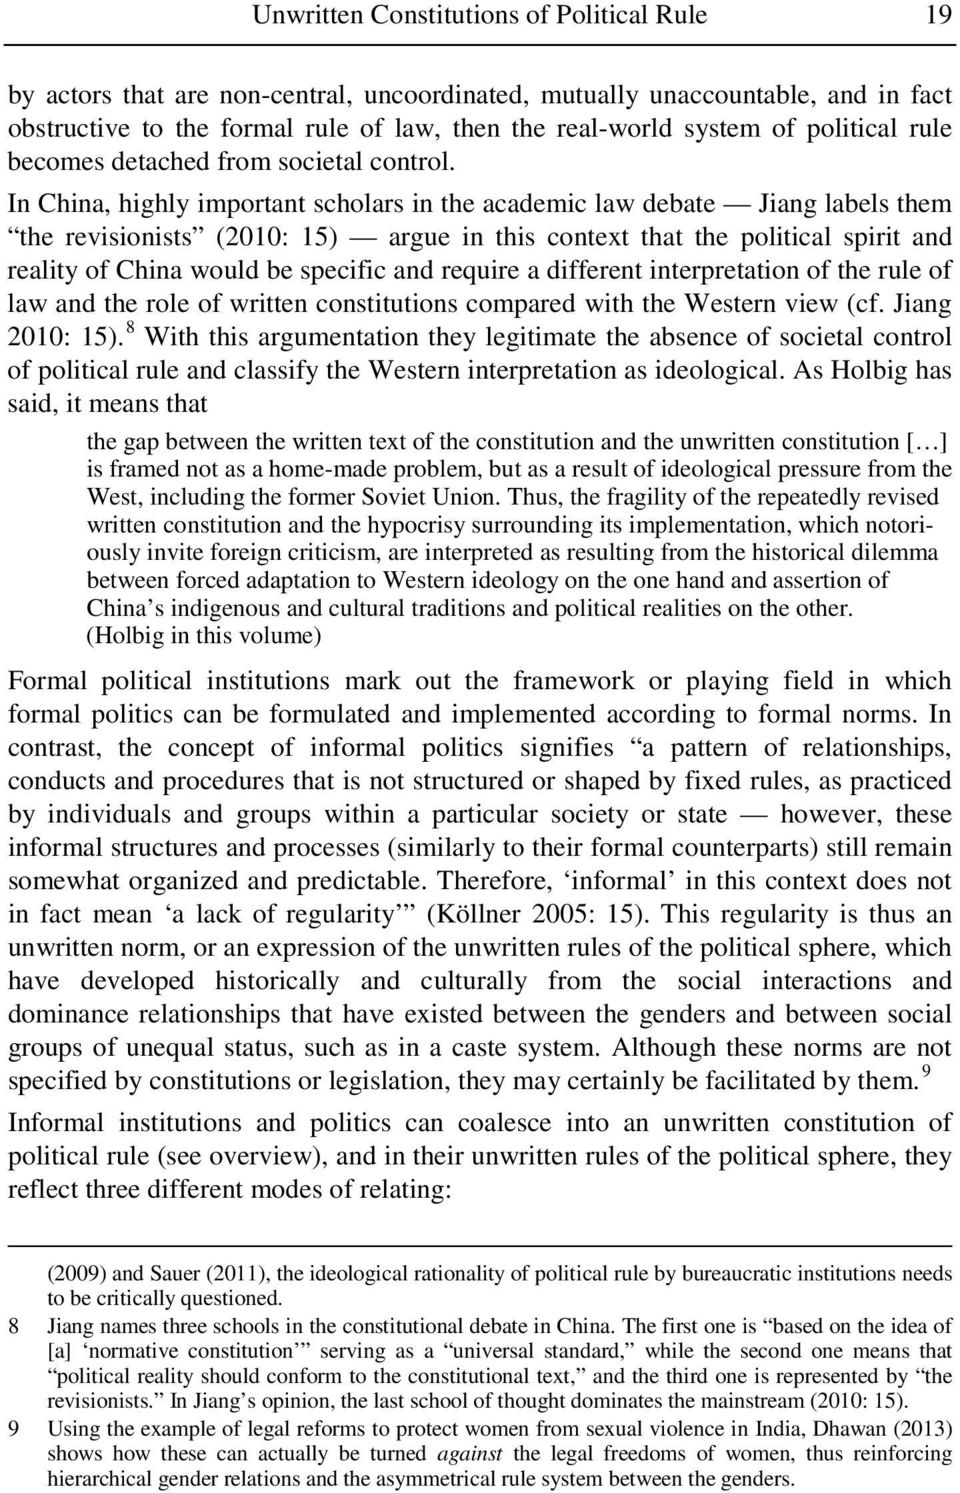 In China, highly important scholars in the academic law debate Jiang labels them the revisionists (2010: 15) argue in this context that the political spirit and reality of China would be specific and